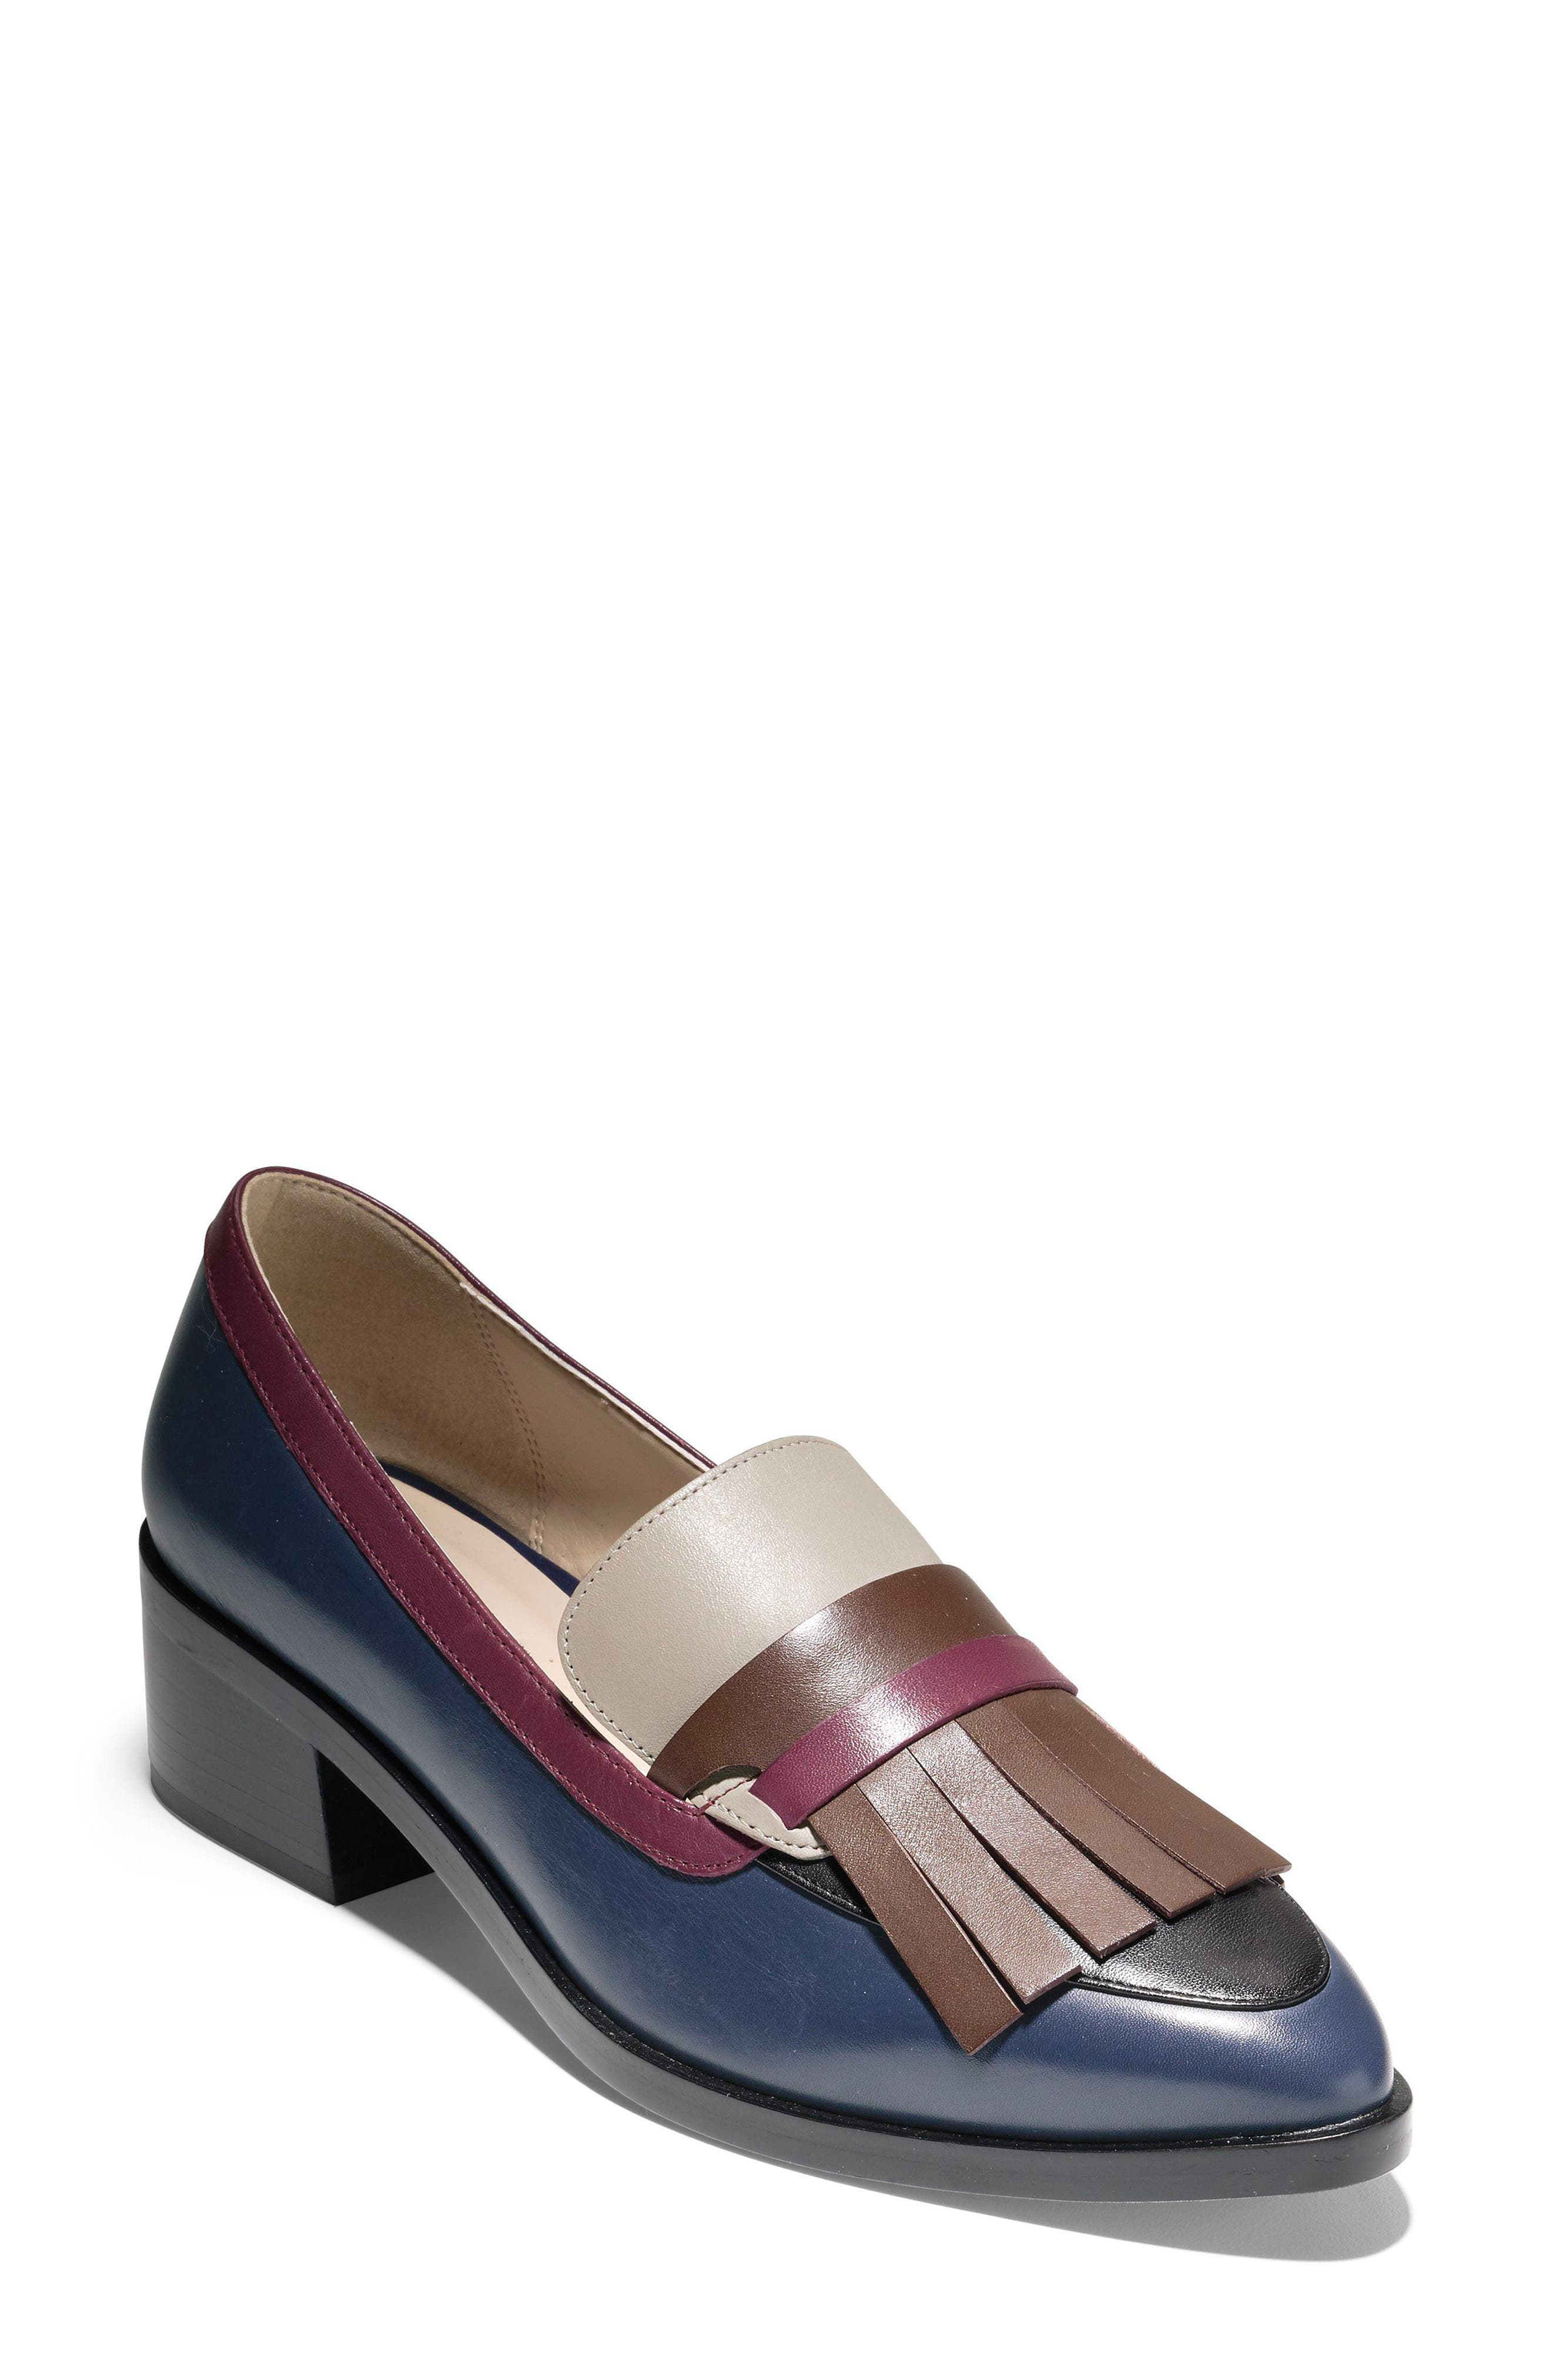 Alternate Image 1 Selected - Cole Haan Margarite Loafer Pump (Women)